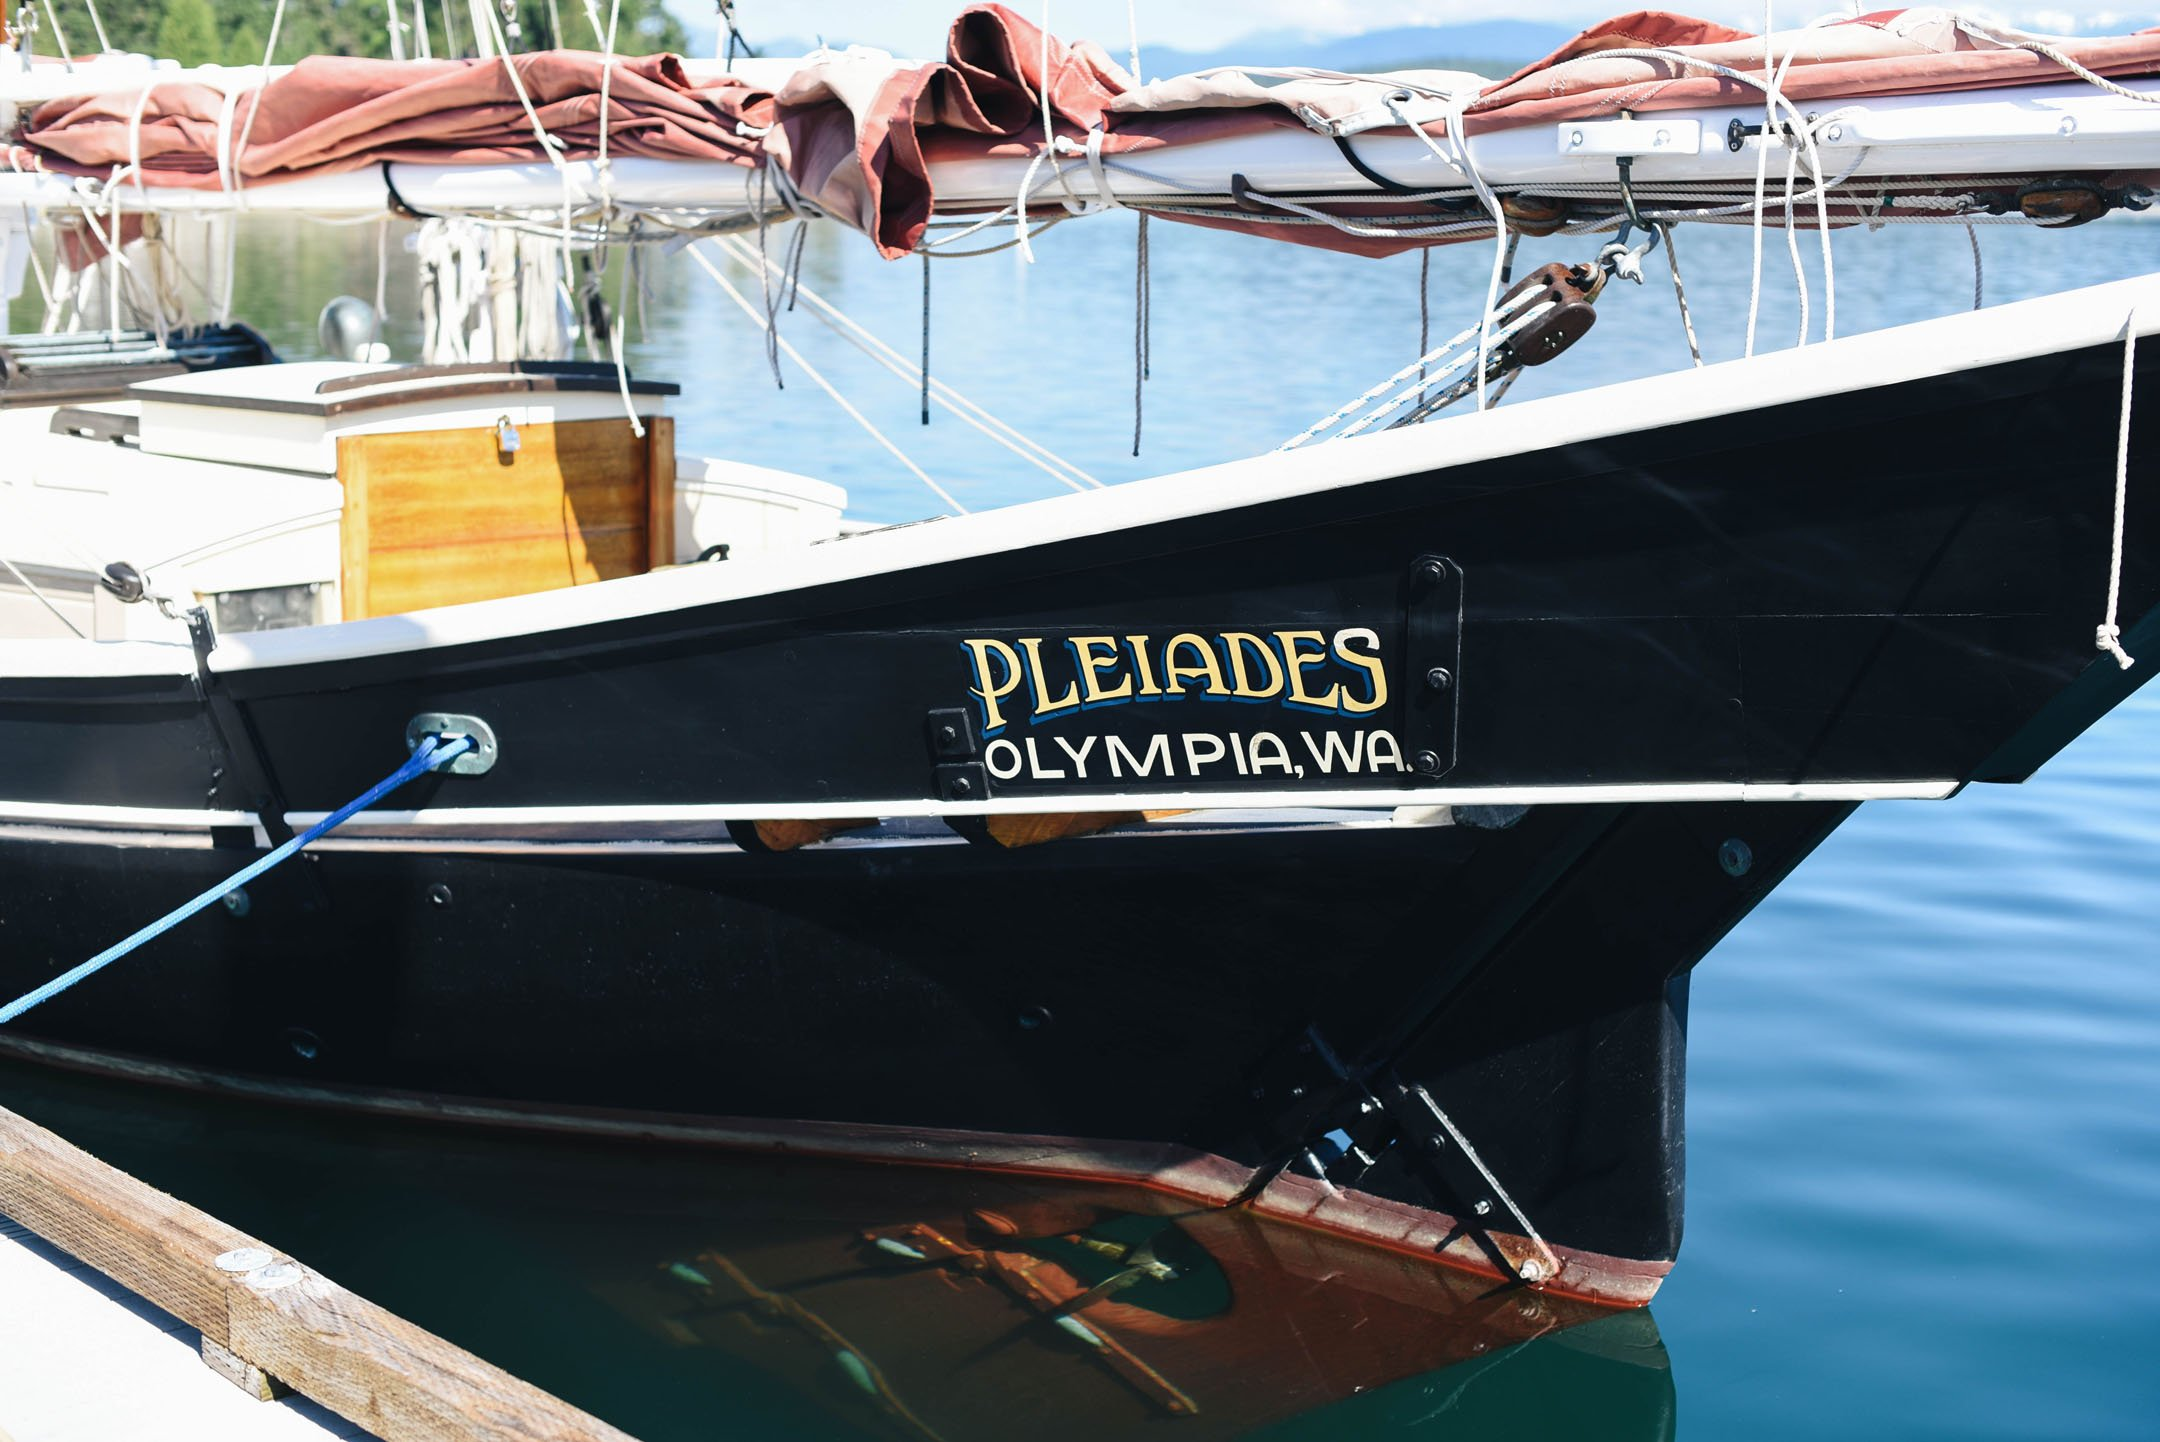 Pleiades olympia washington boat